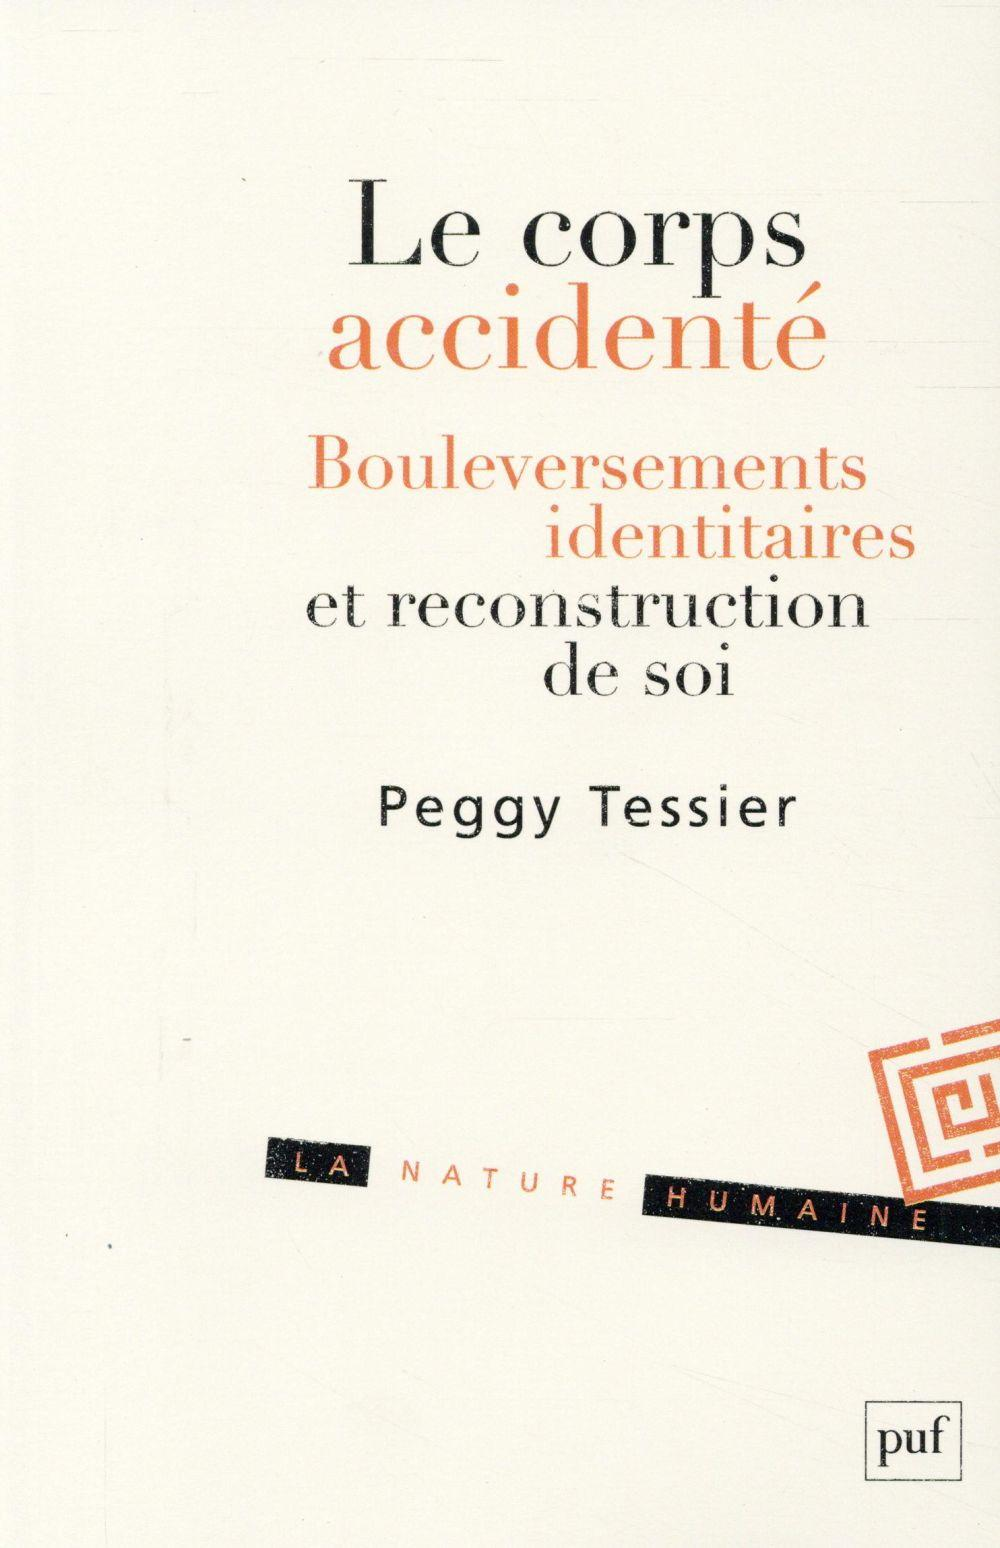 Le corps accidenté  - Peggy Tessier